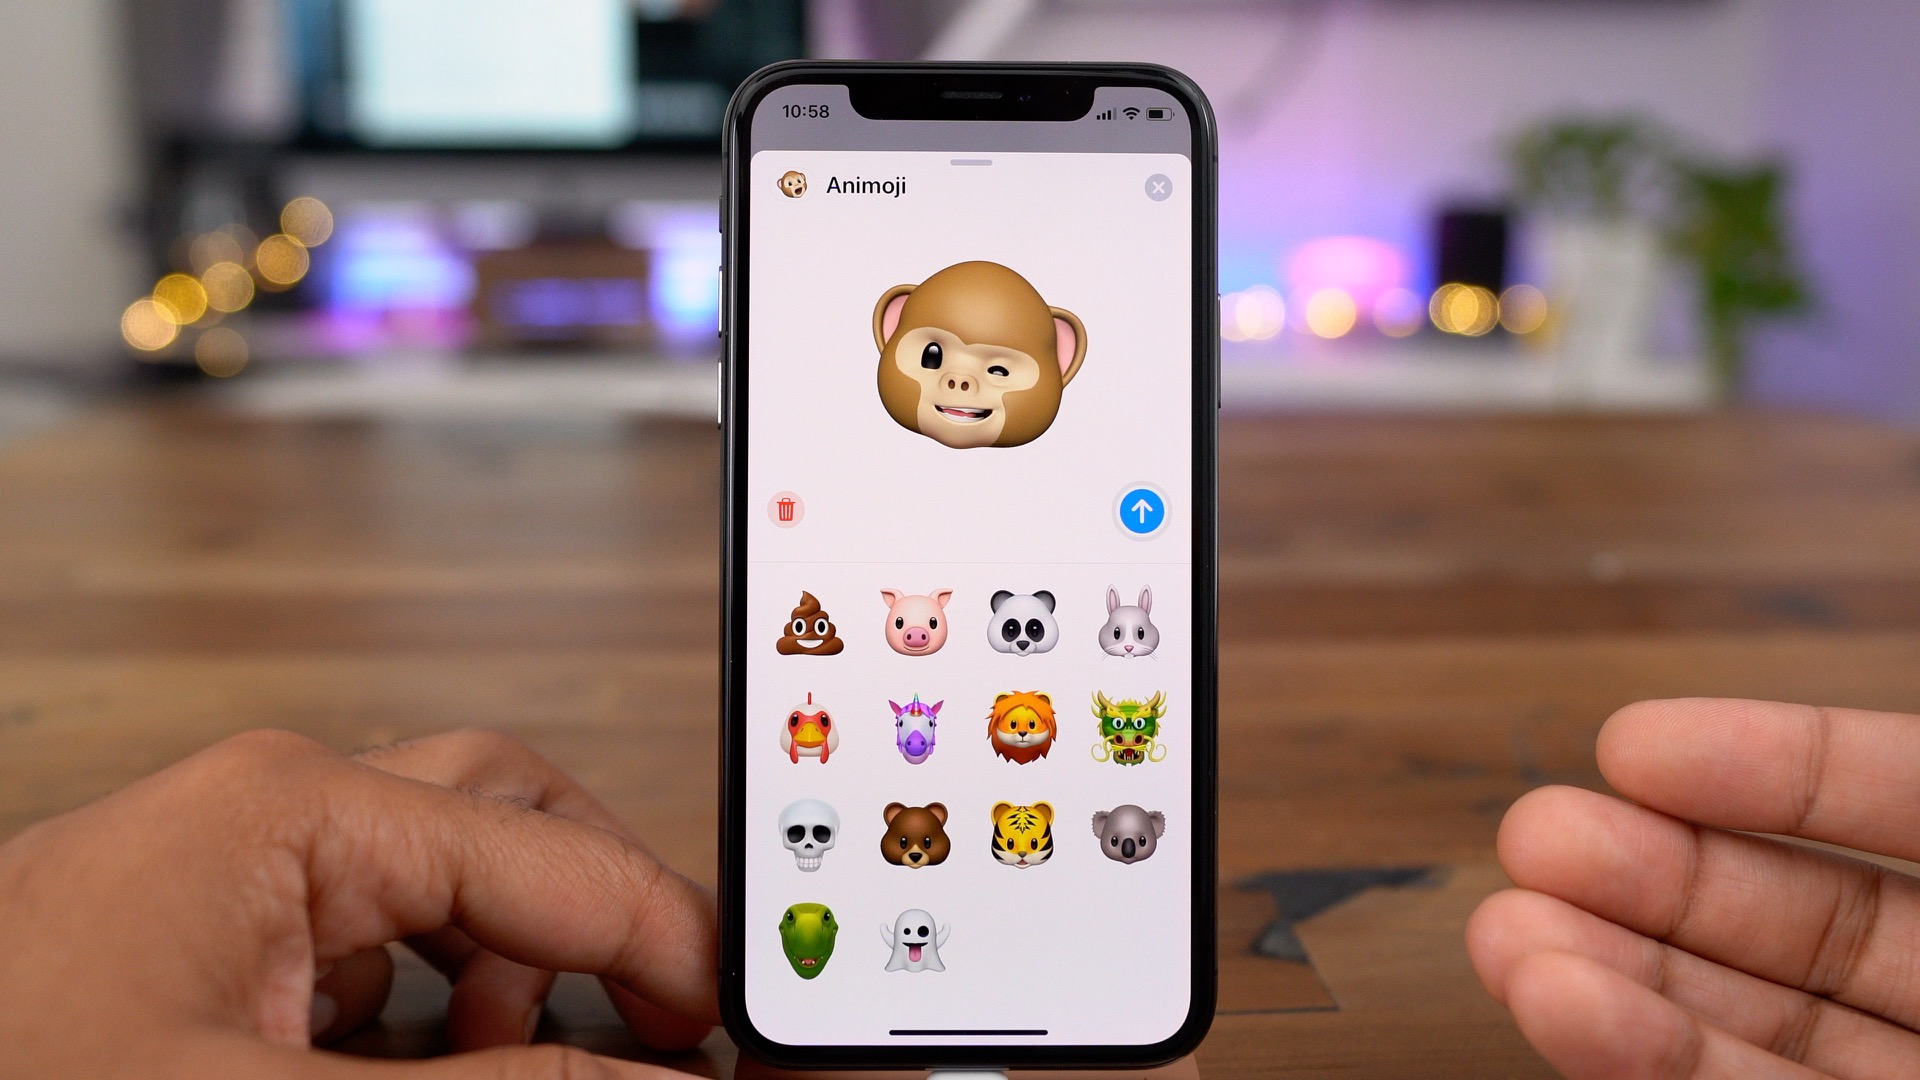 Ios 12 Hands On With A Dozen New Changes And Features Video 9to5mac